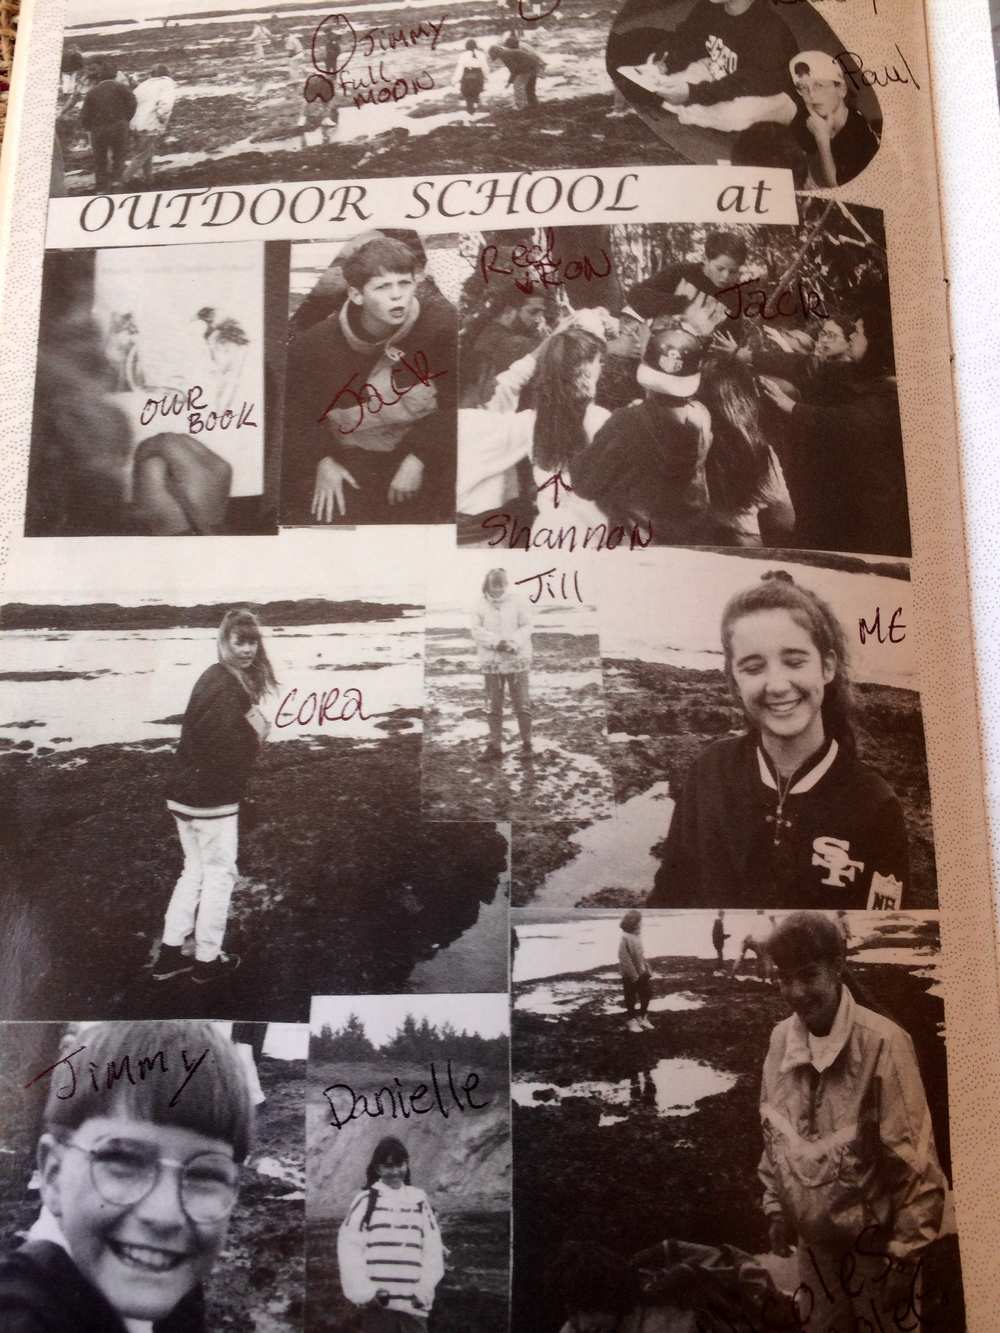 Our 6th Grade Camp spread in the Orchard School yearbook. Don't mind my lovely 6th grade penmanship.